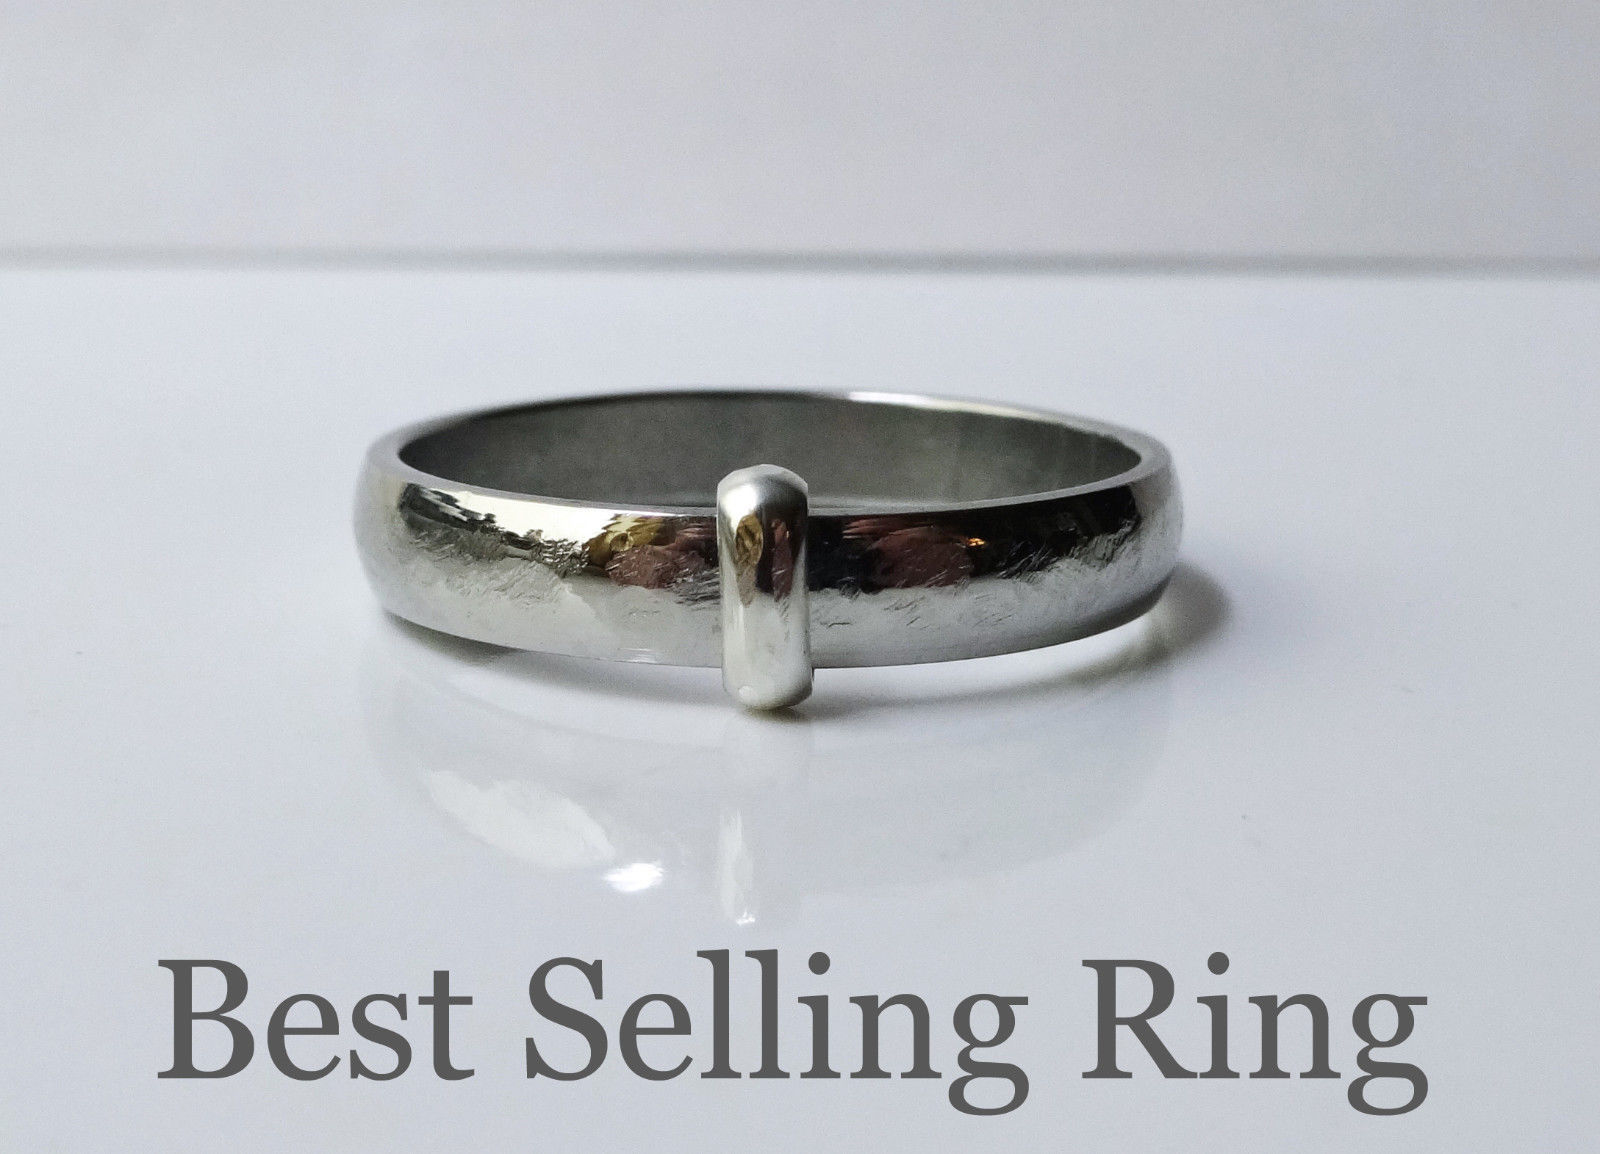 Outlander Jewelry Claires Wedding Band Stainless  : 57 from www.bonanza.com size 1600 x 1154 jpeg 162kB